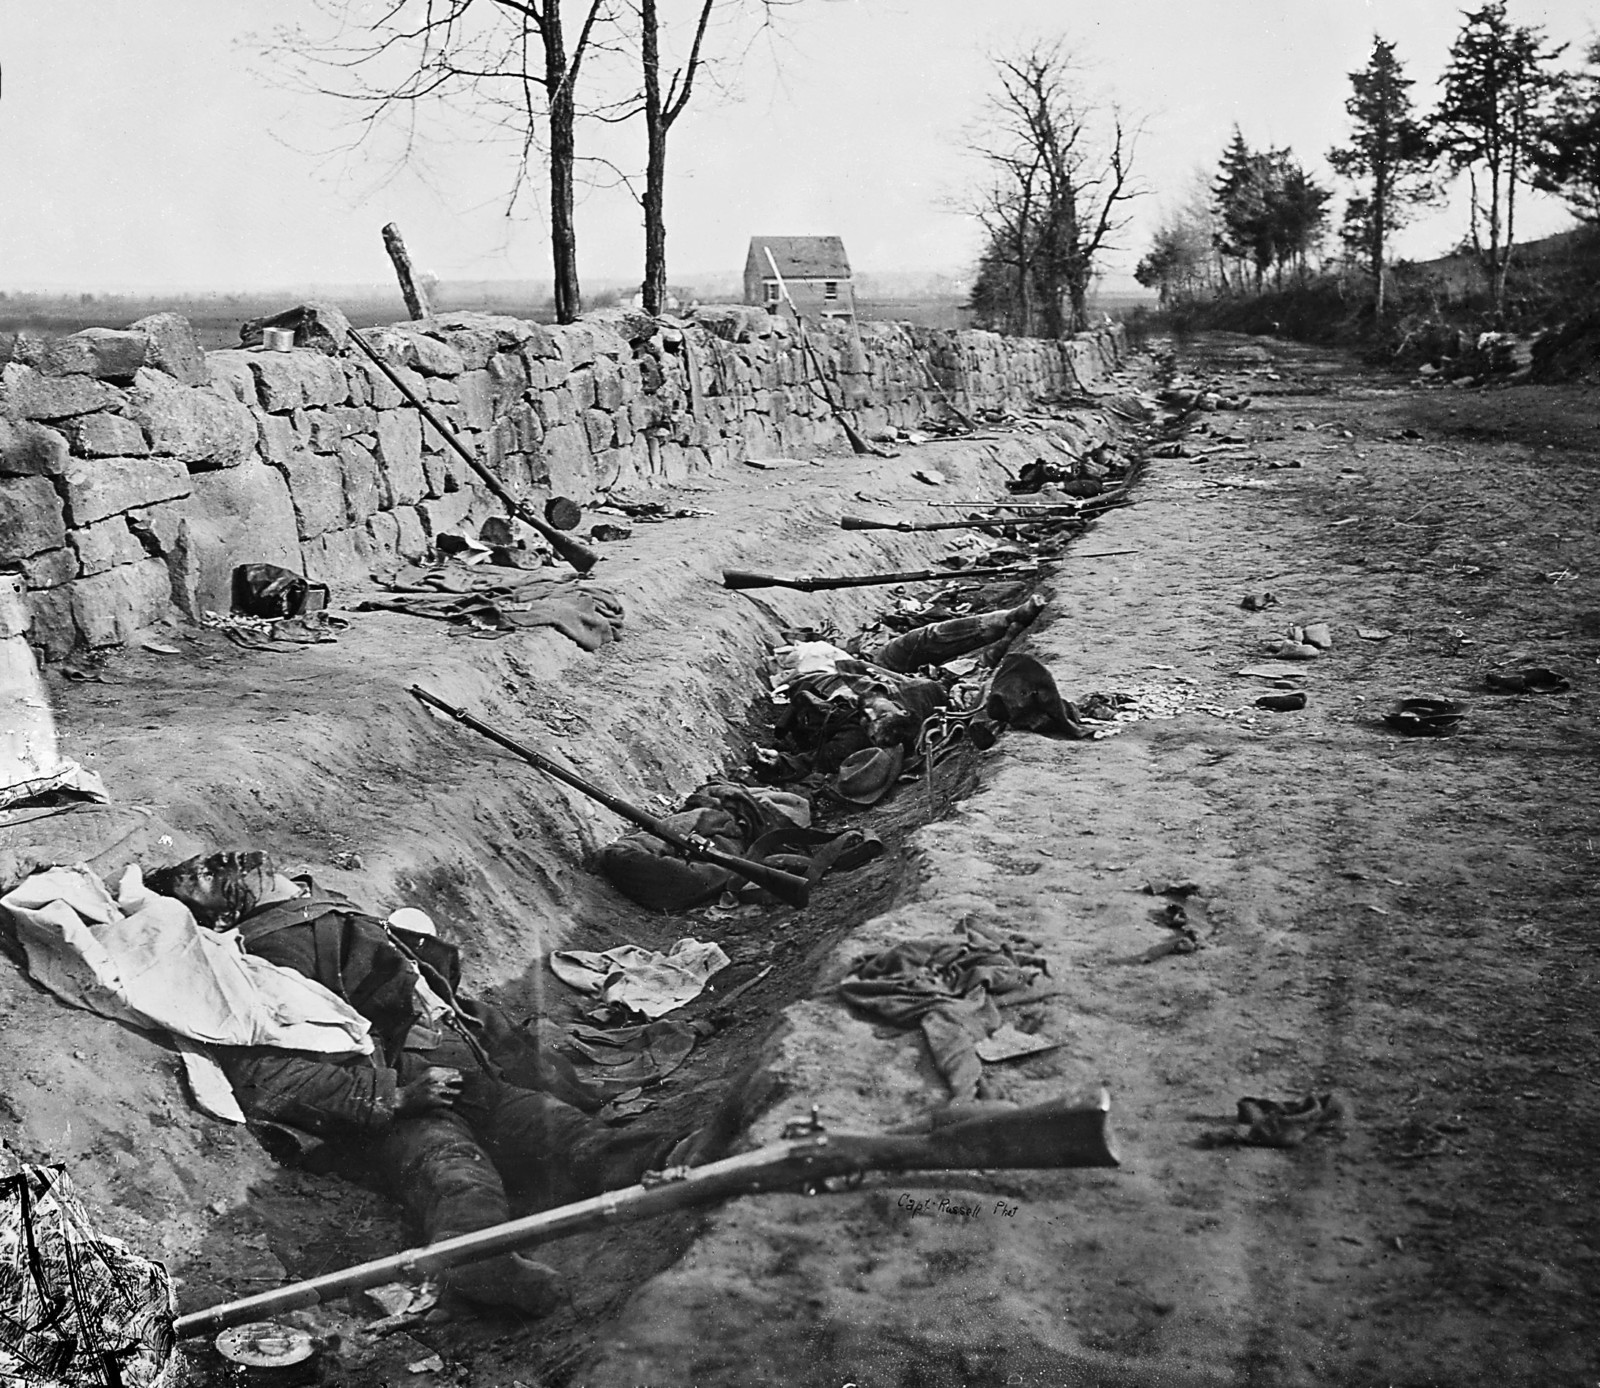 American Civil War by Mathew Brady